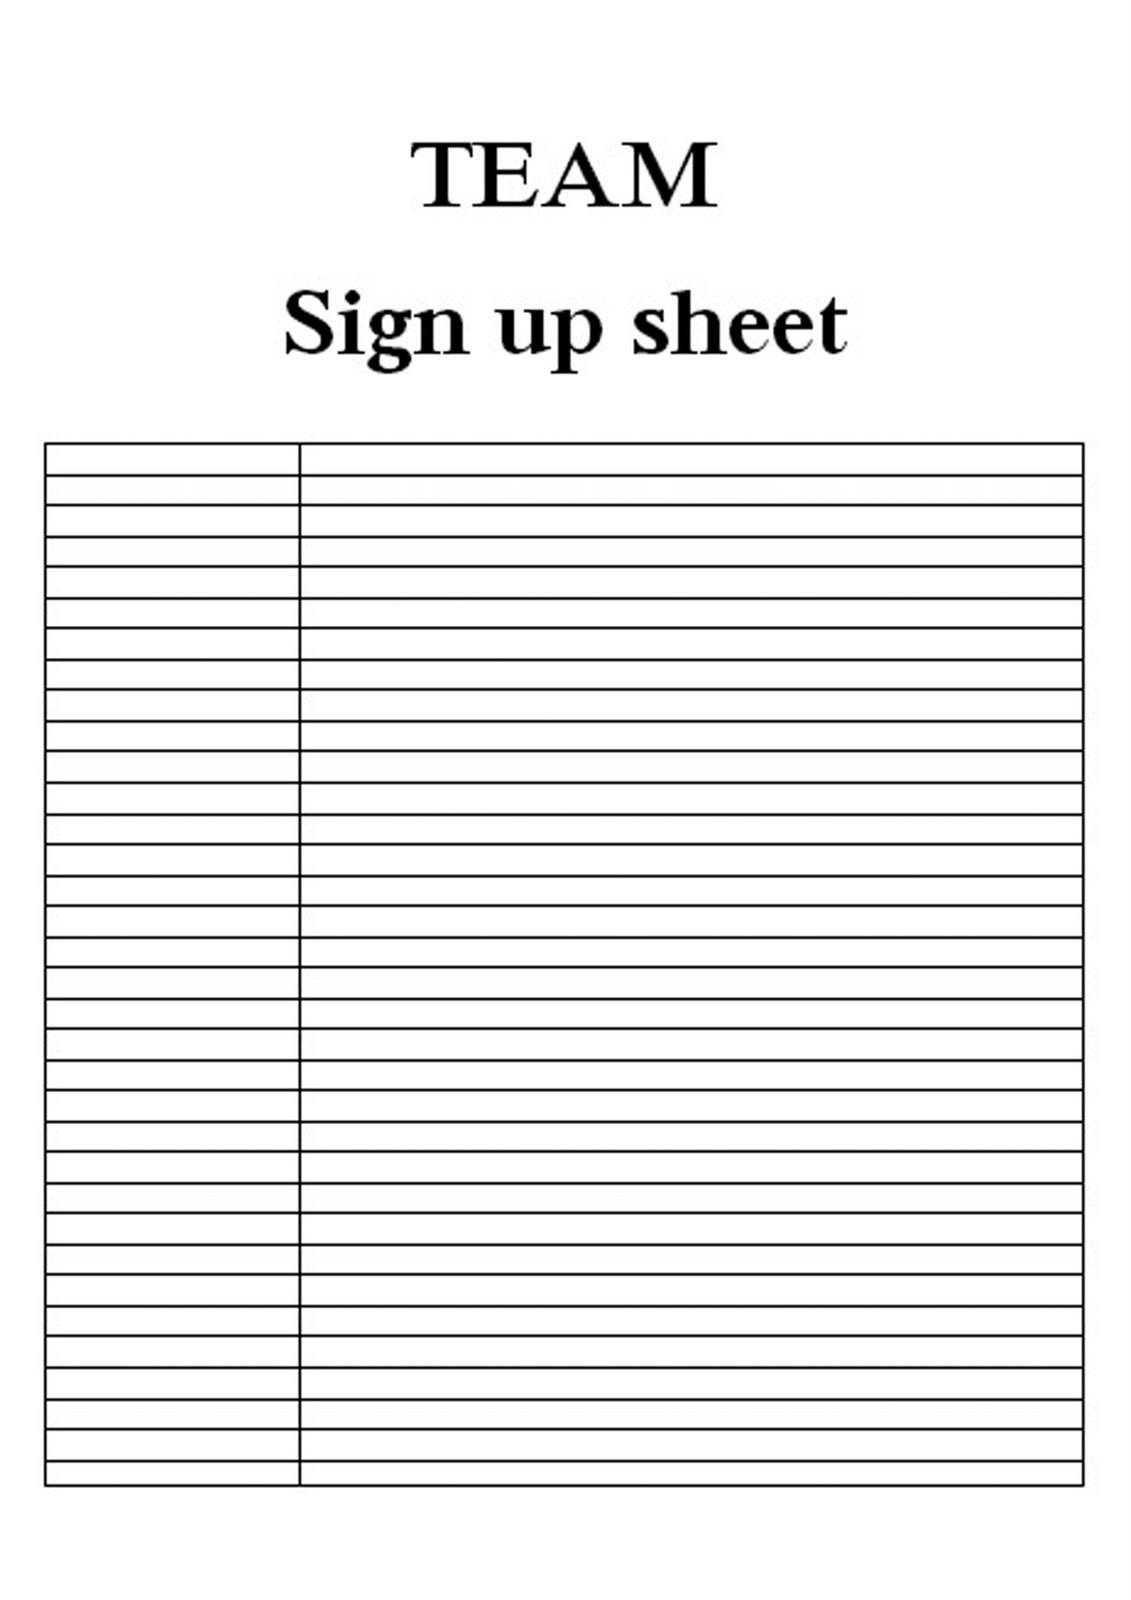 Comprehensive image with printable sign up sheets